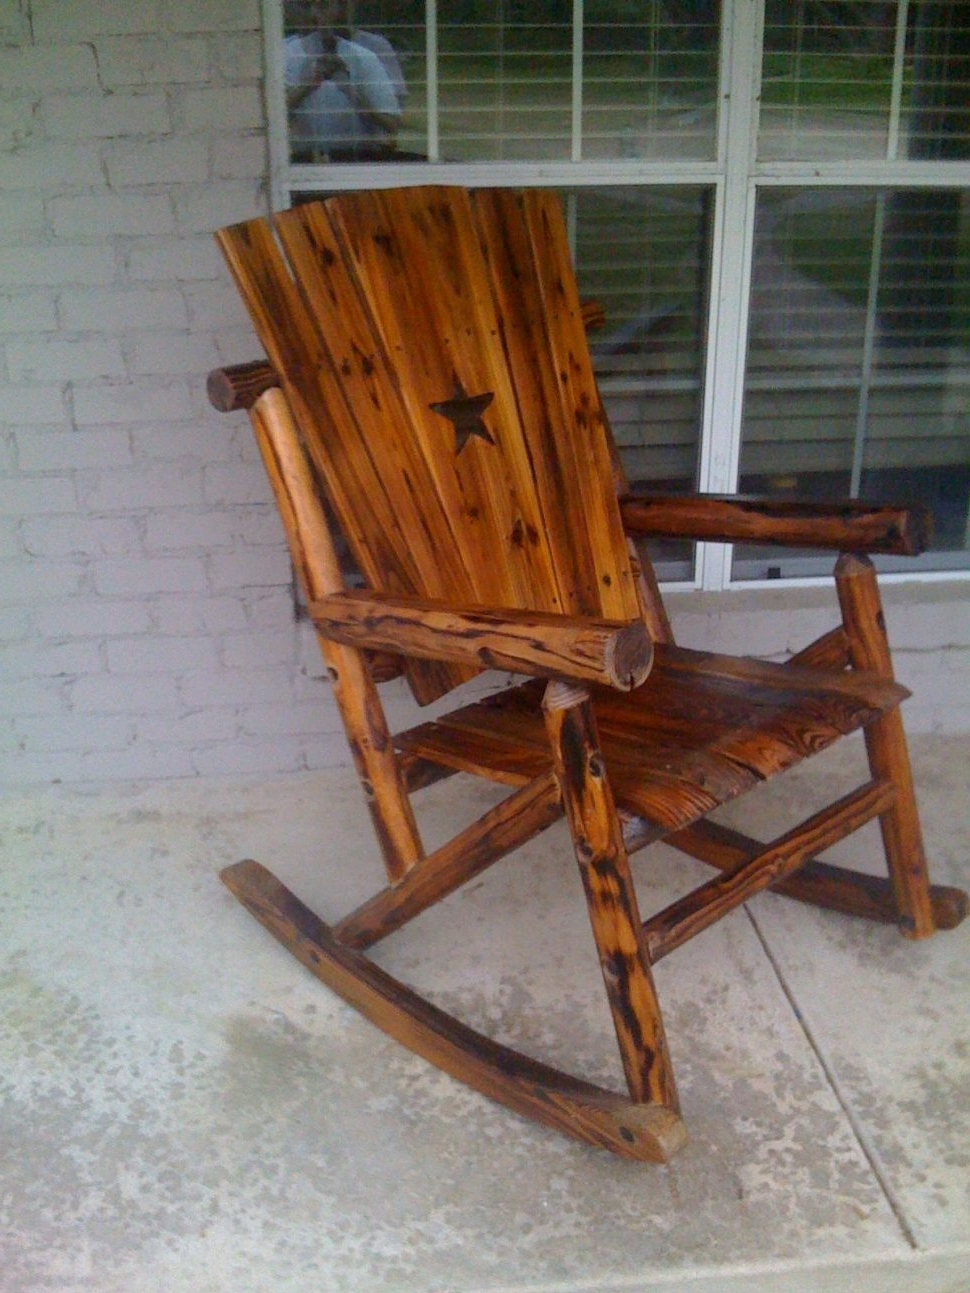 Well Known Rocking Chairs For Porch Inside Rustic Wooden Outdoor Rocking Chairs – Outdoor Designs (View 12 of 15)